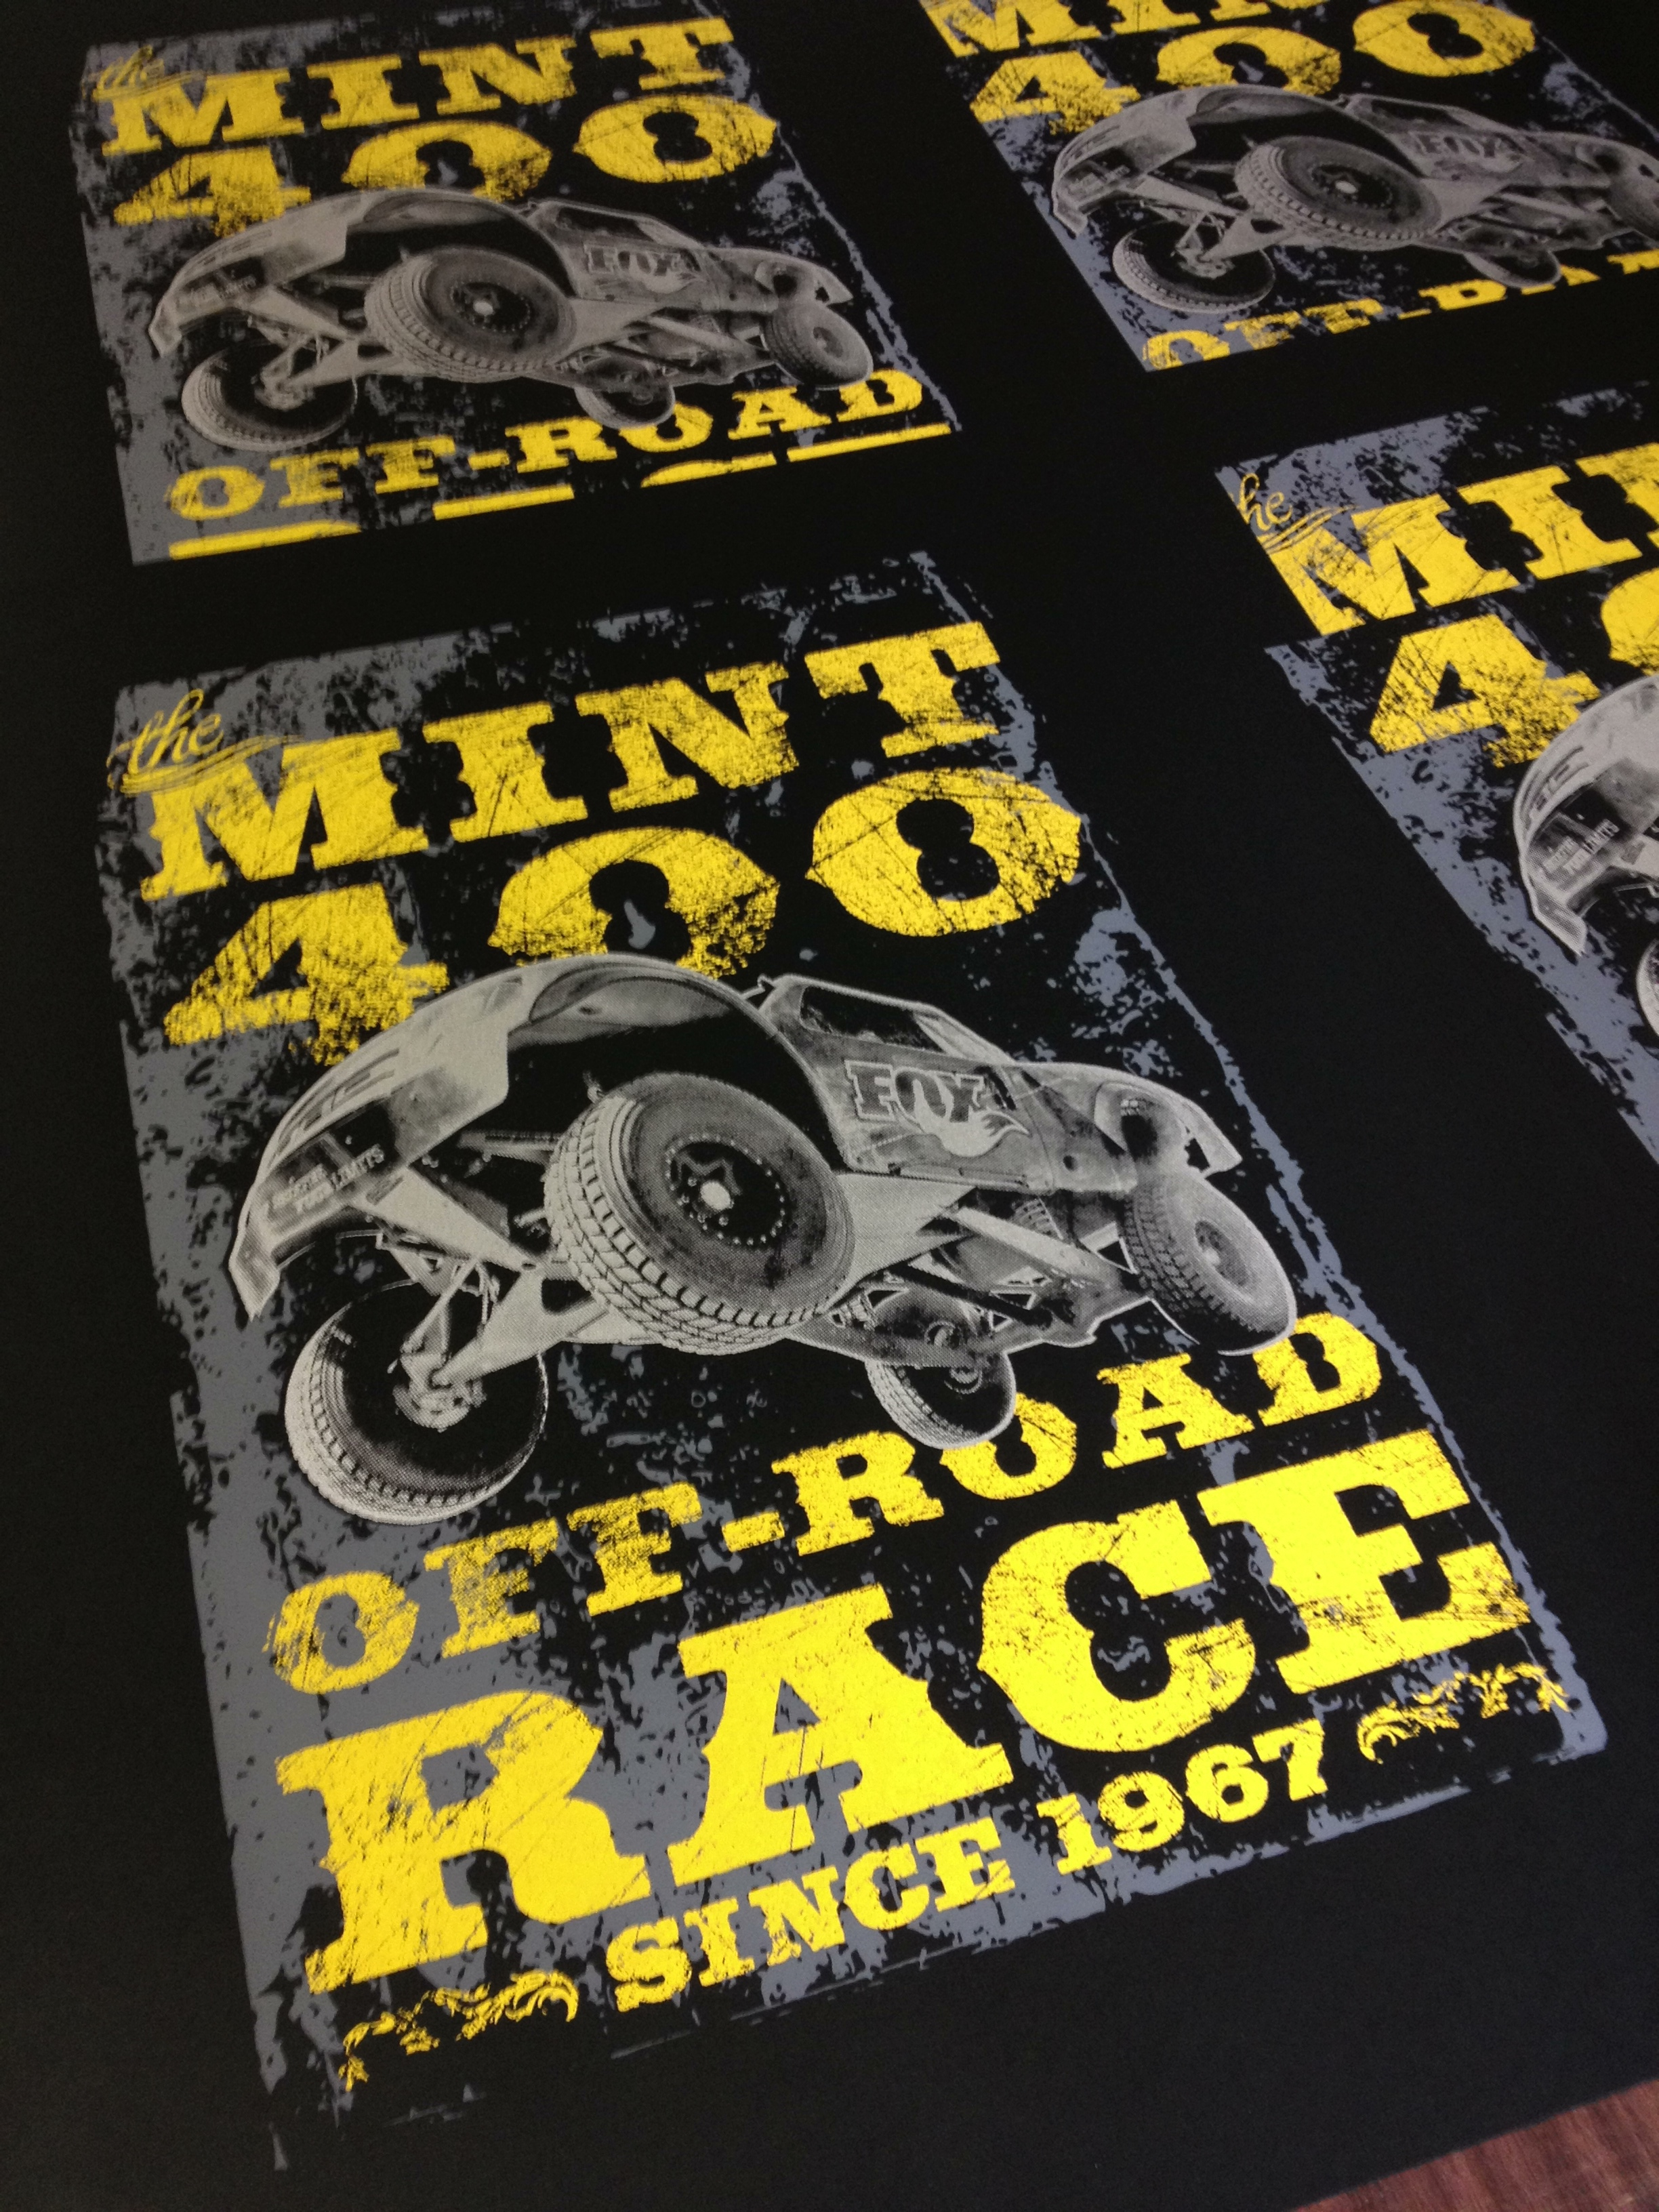 Mint 400 Poster